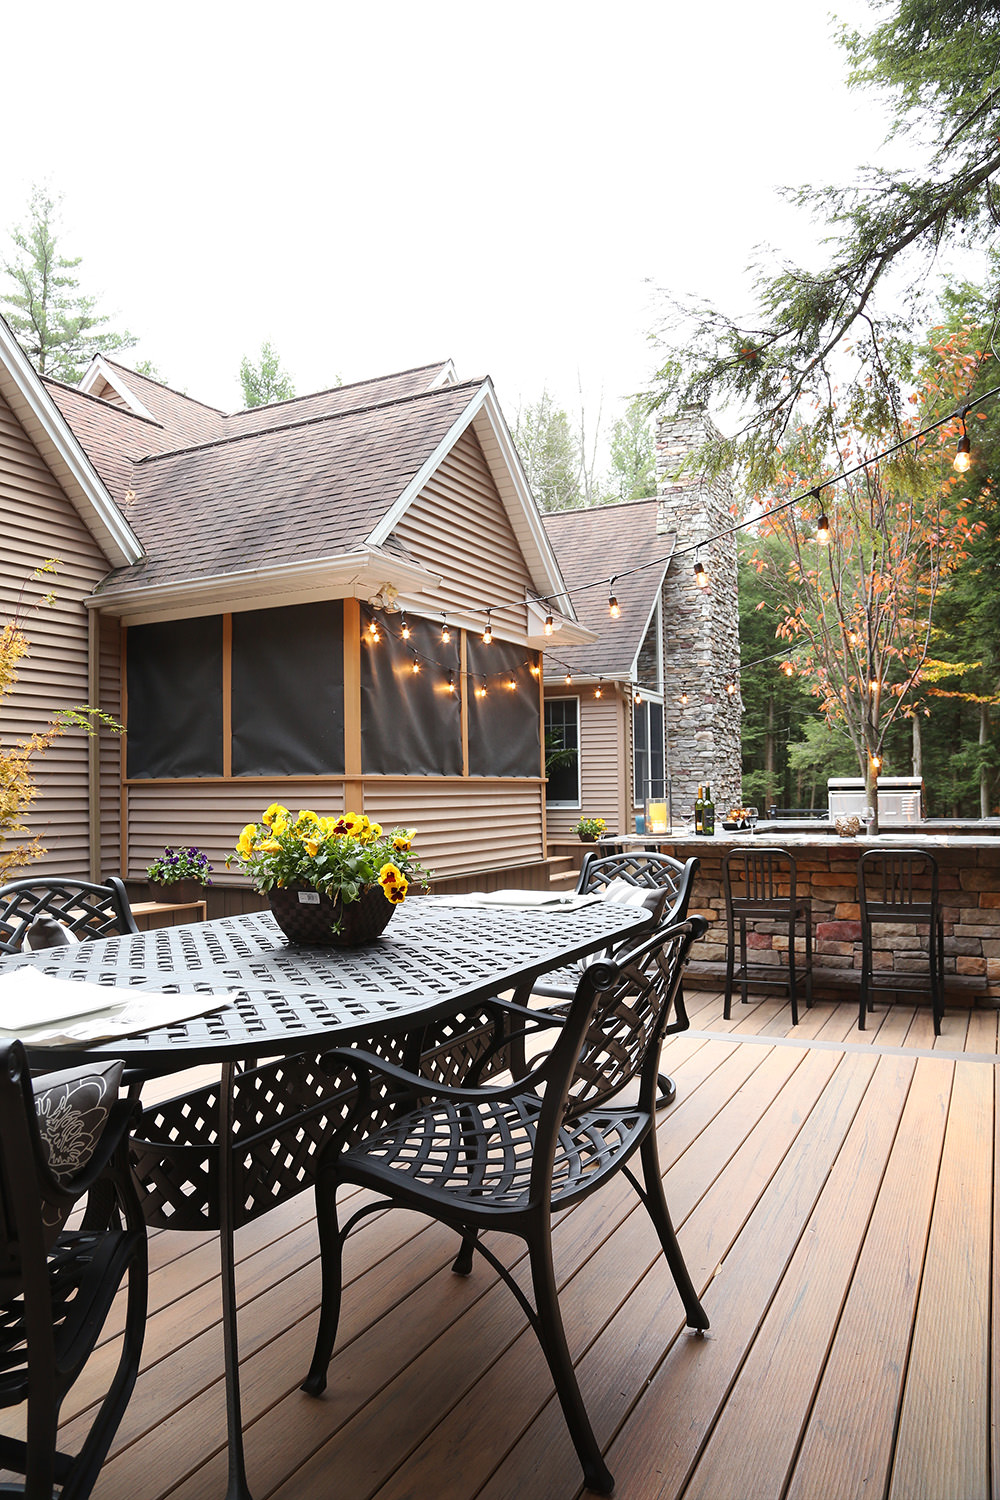 This open concept provides sheer relaxation and a real closeness with nature.